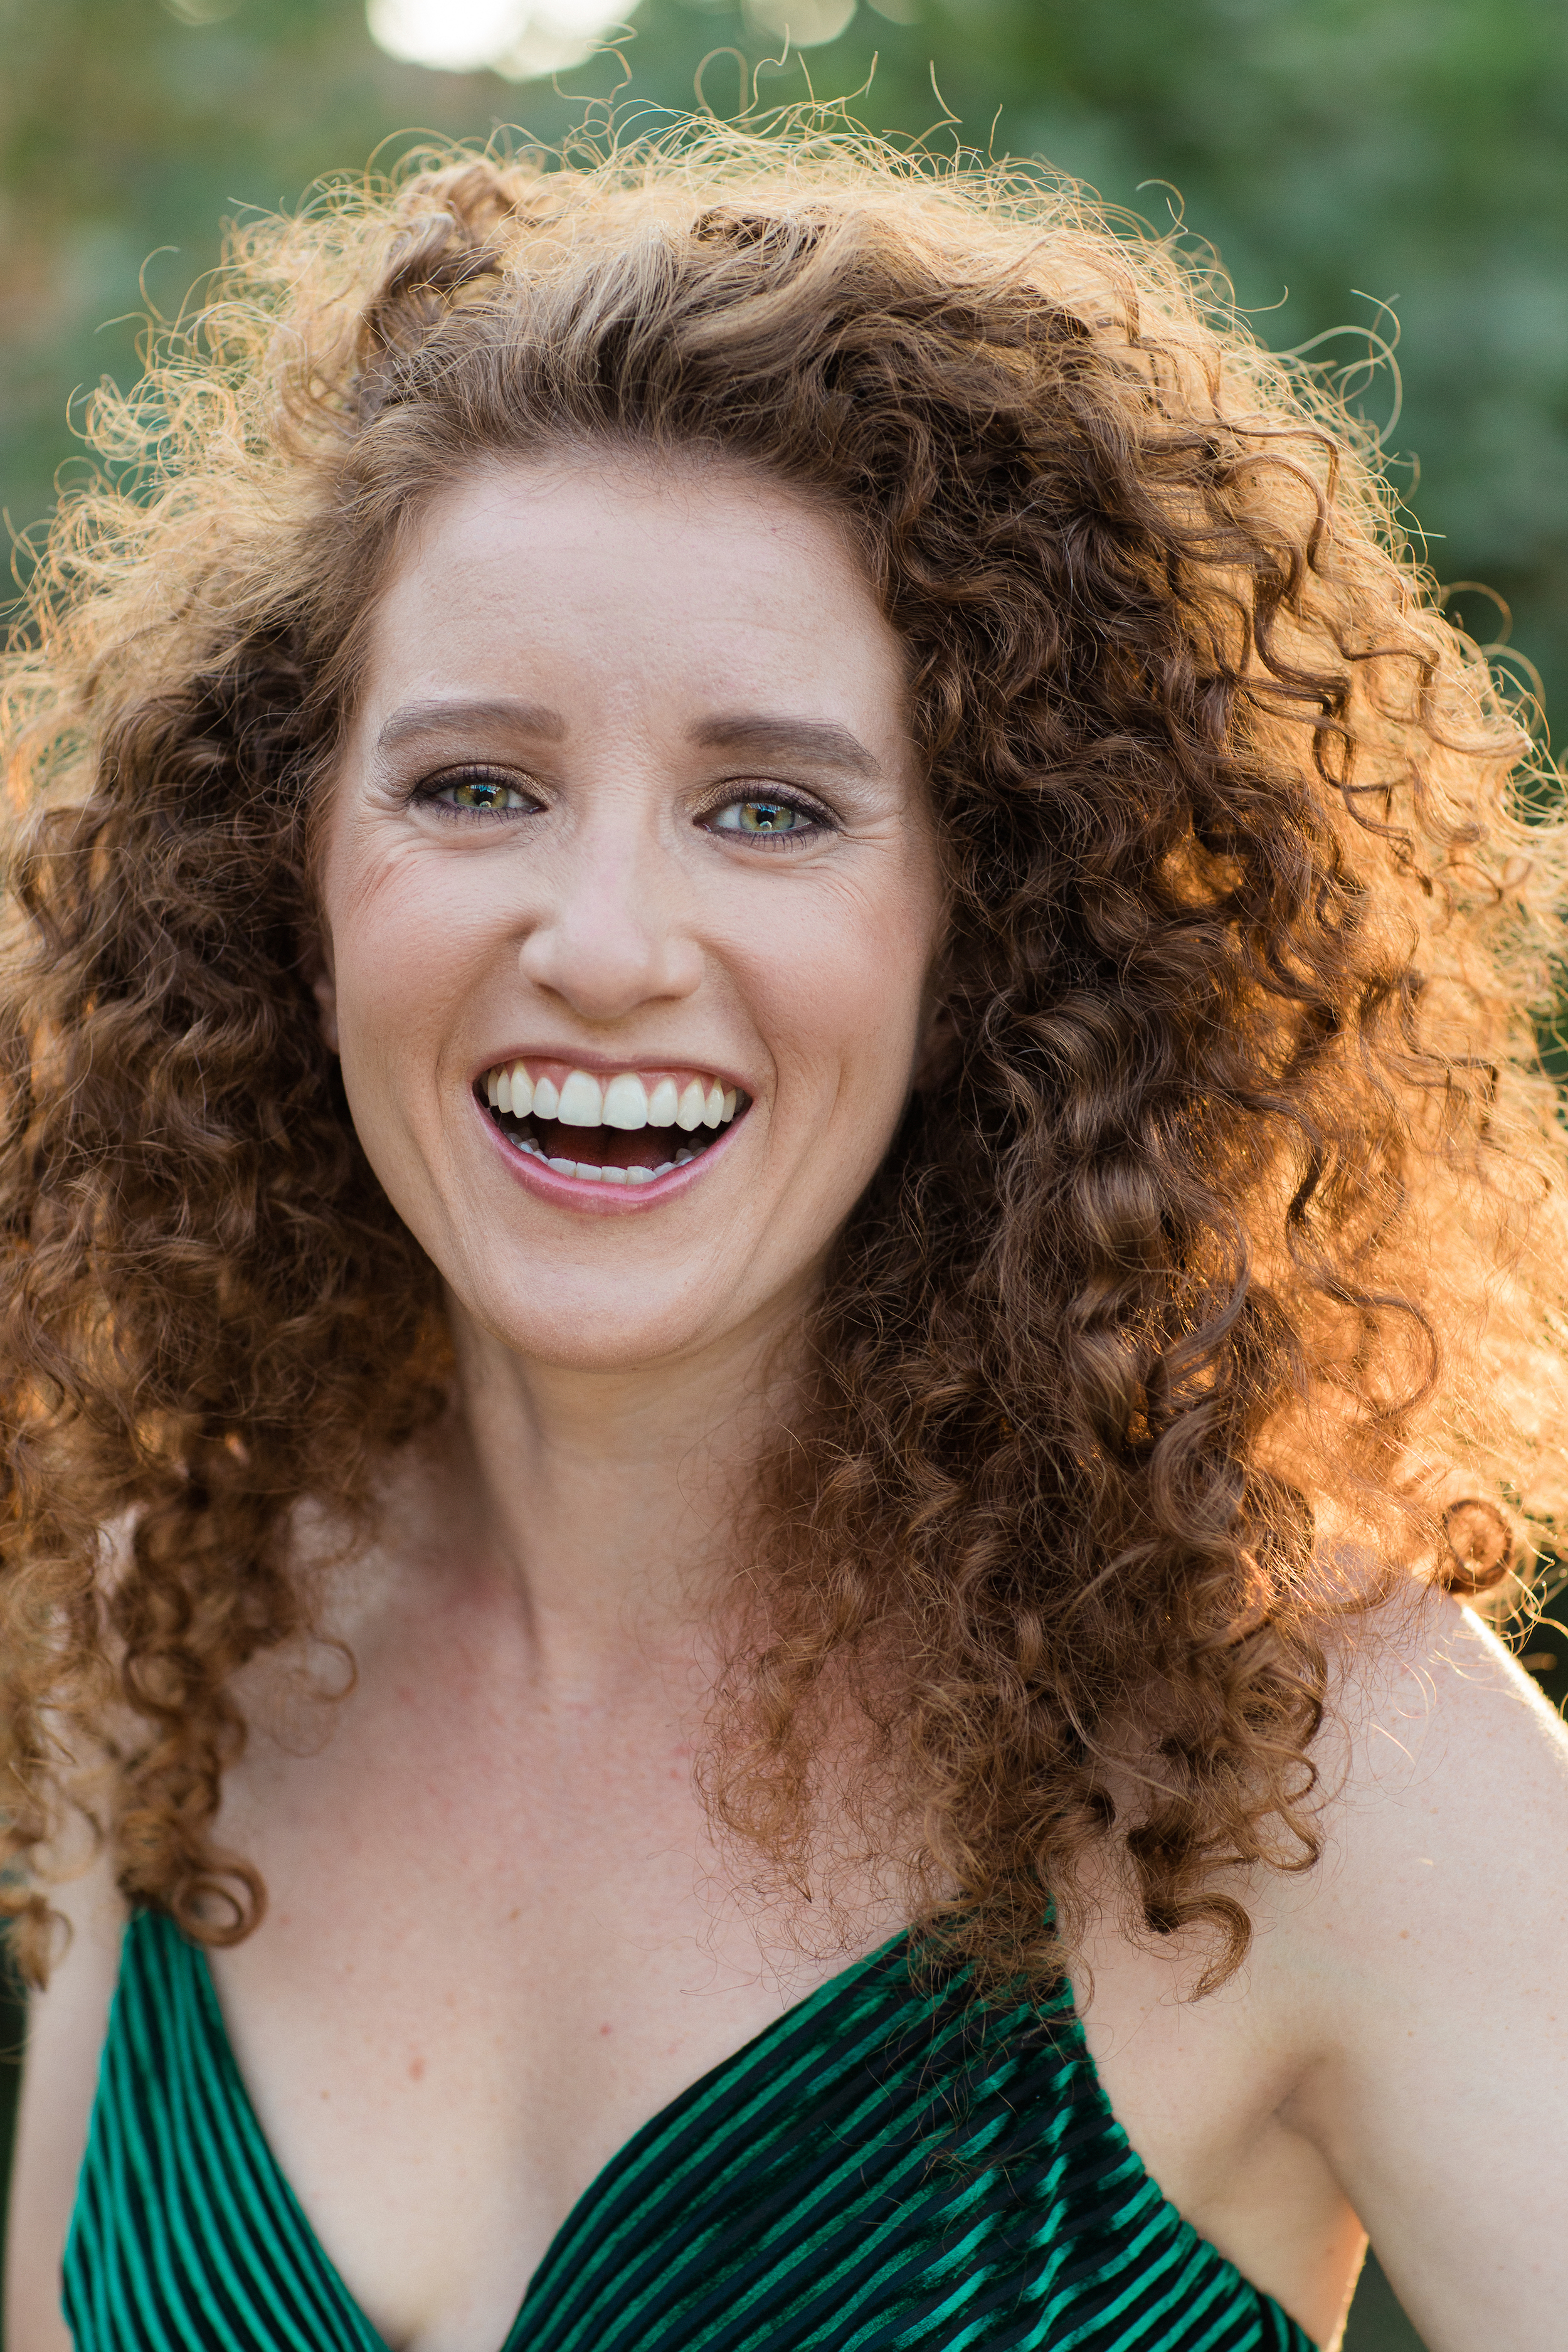 Portrait of Steph Holmbo in an outdoor setting during sunset. Her auburn hair is voluminous, curly, and seems to glow due to the sun shining through behind her. She is smiling brilliantly into the camera.